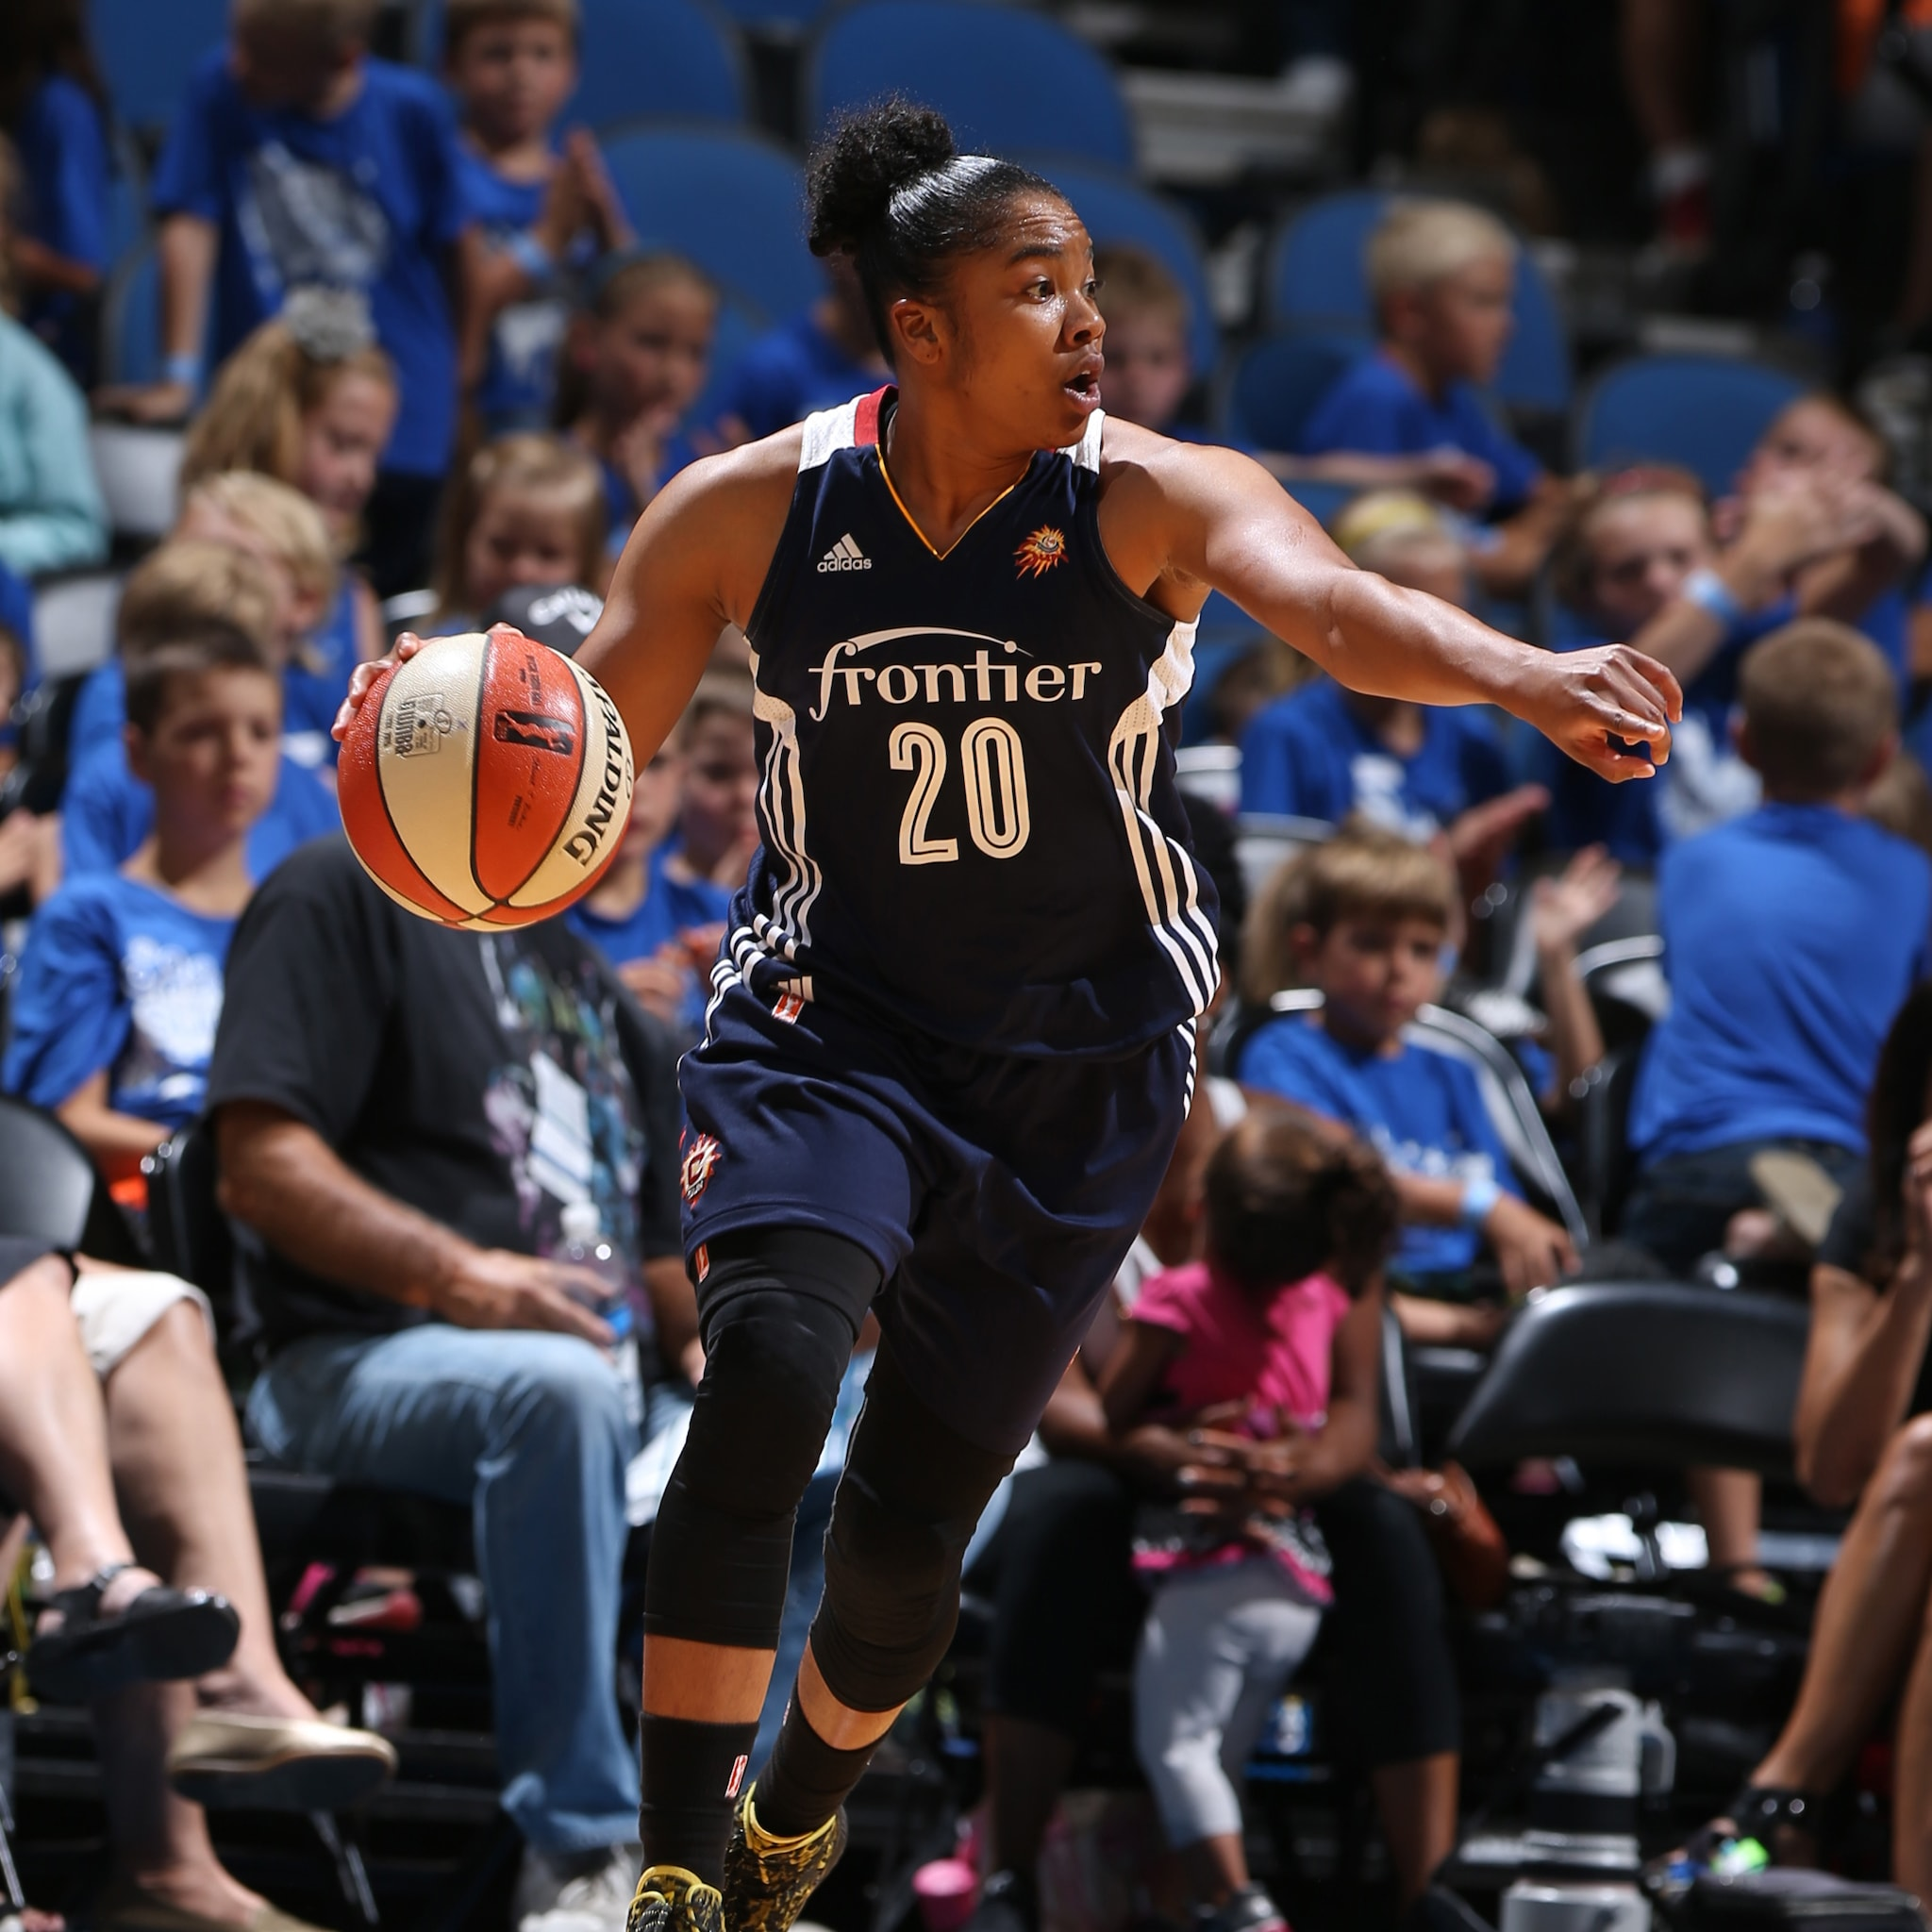 MINNEAPOLIS, MN - JULY 22: Alex Bentley #20 of the Connecticut Sun drives against the Minnesota Lynx on July 22, 2015 at Target Center in Minneapolis, Minnesota. NOTE TO USER: User expressly acknowledges and agrees that, by downloading and or using this Photograph, user is consenting to the terms and conditions of the Getty Images License Agreement. Mandatory Copyright Notice: Copyright 2015 NBAE (Photo by David Sherman/NBAE via Getty Images)